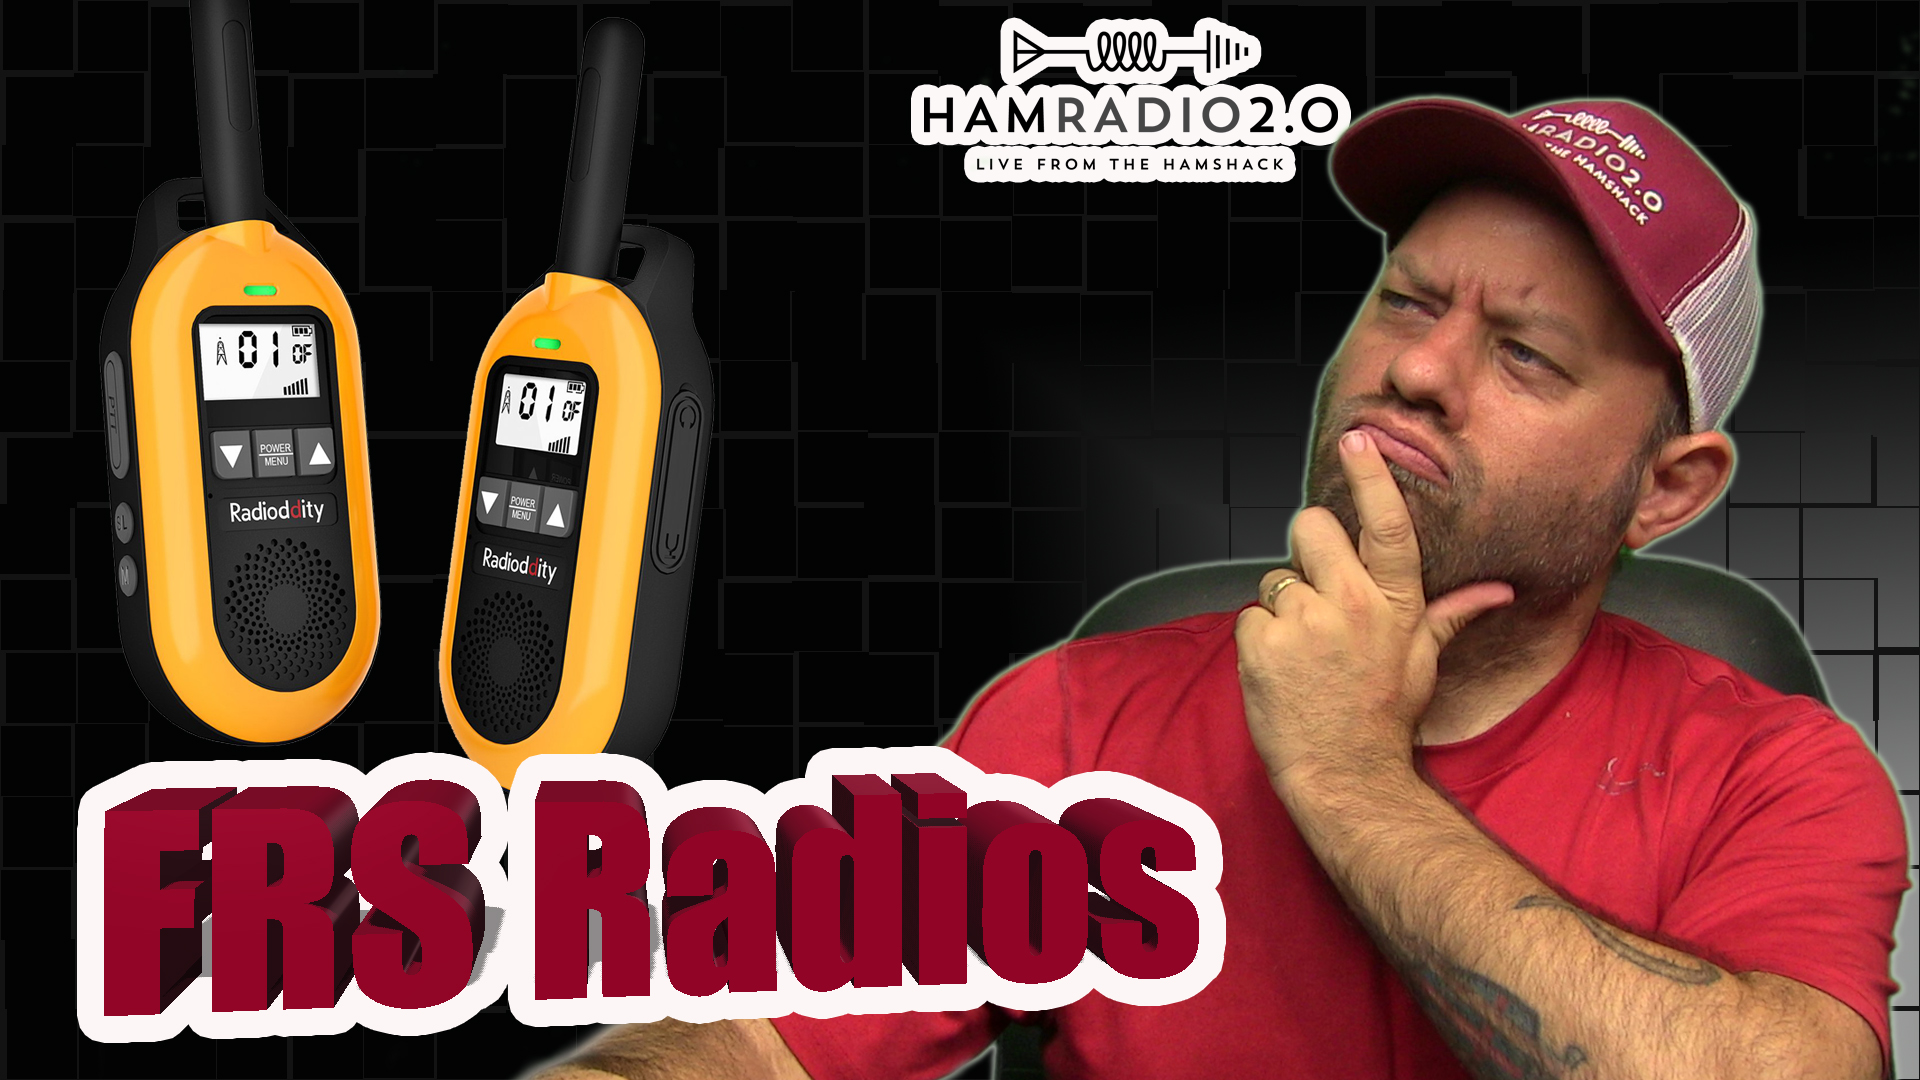 Episode 405: What is FRS? Radioddity FS-T2 FRS Radio Review | Family Radio Service